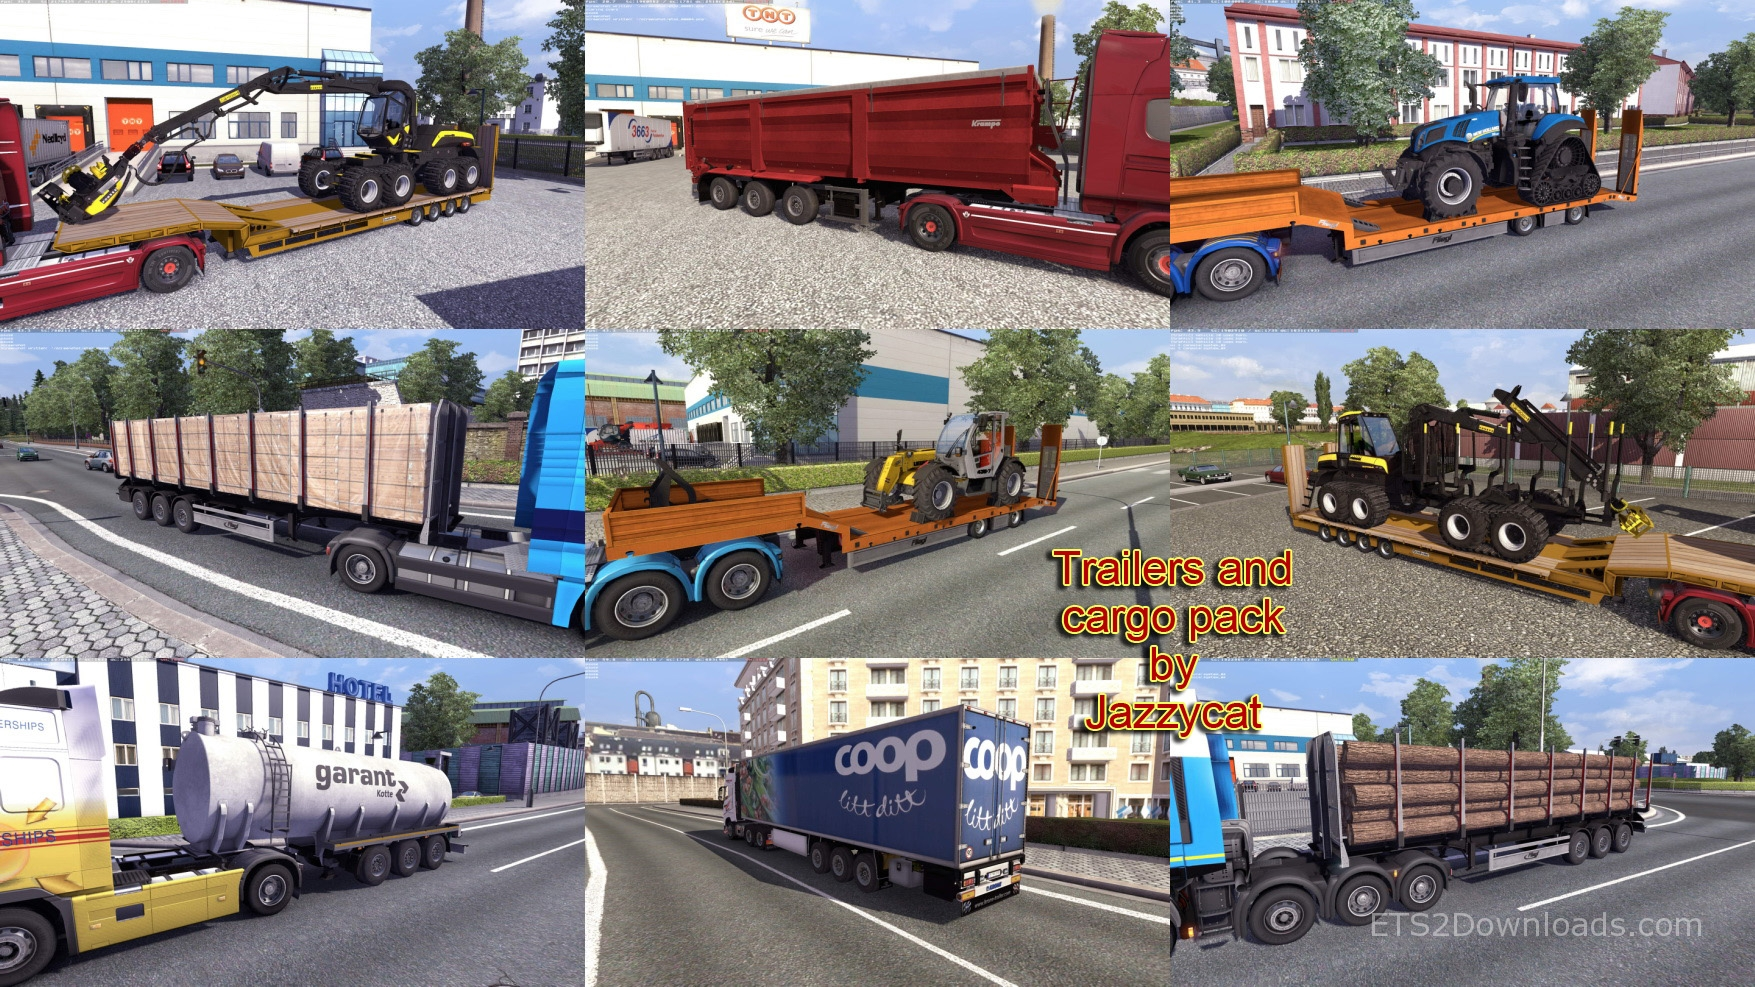 Trailers and Cargo Pack by Jazzycat v3 1 - ETS2 Mods